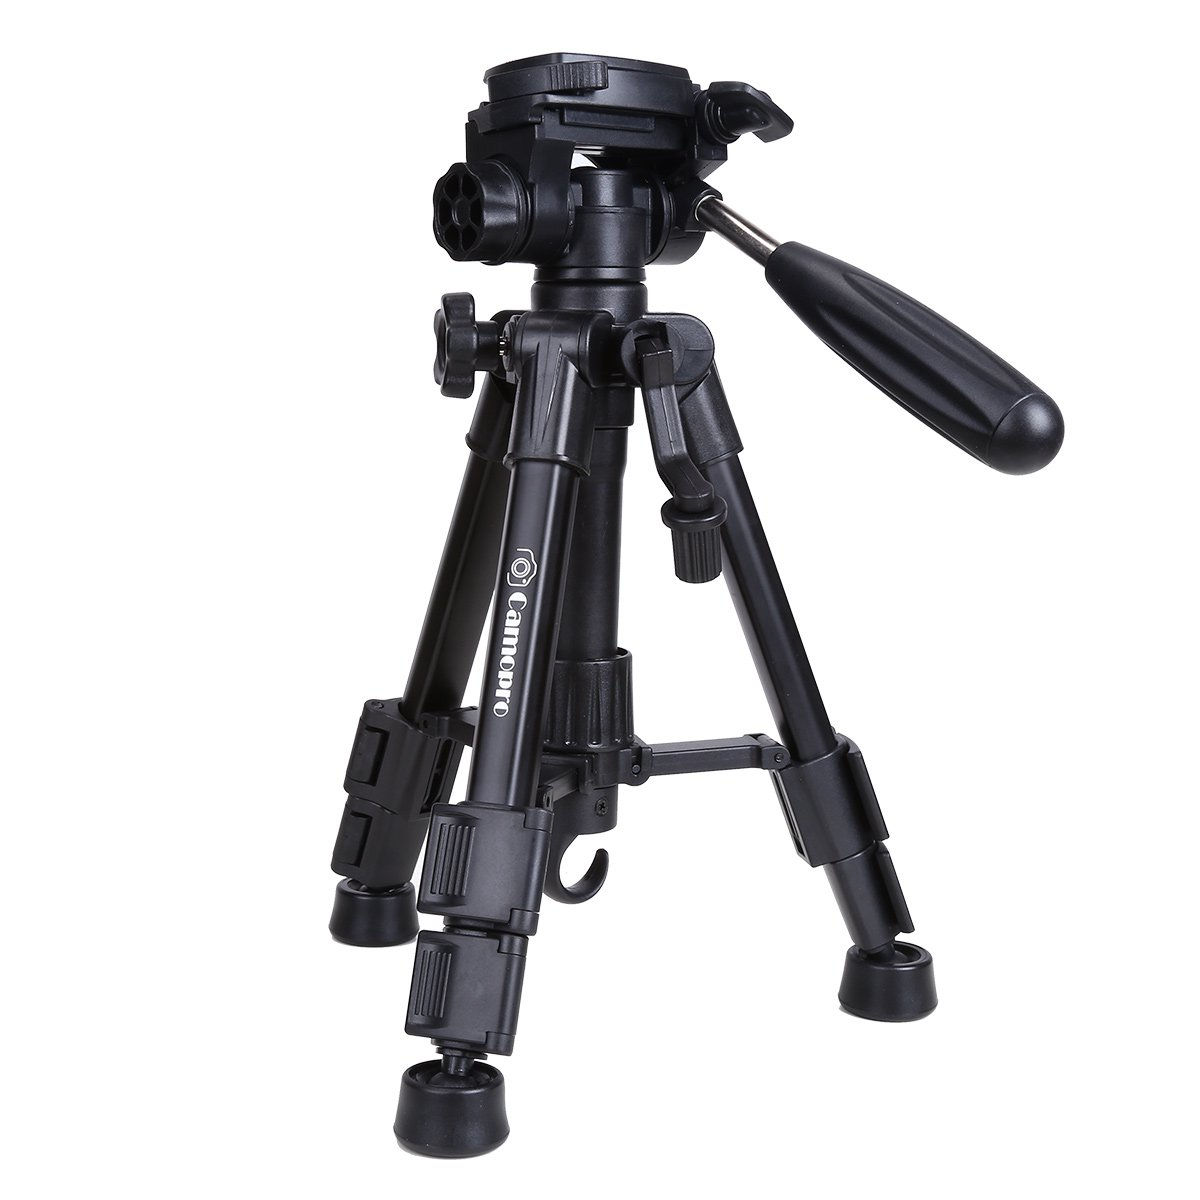 Mini Tripod - Camopro Portable Desktop Mini Tabletop Tripod for SLR, DSLR Camera, Phones, Spotting Scope and Camcorder with 3-Way Head, Quick Release Plate and Carrying Bag CP-103